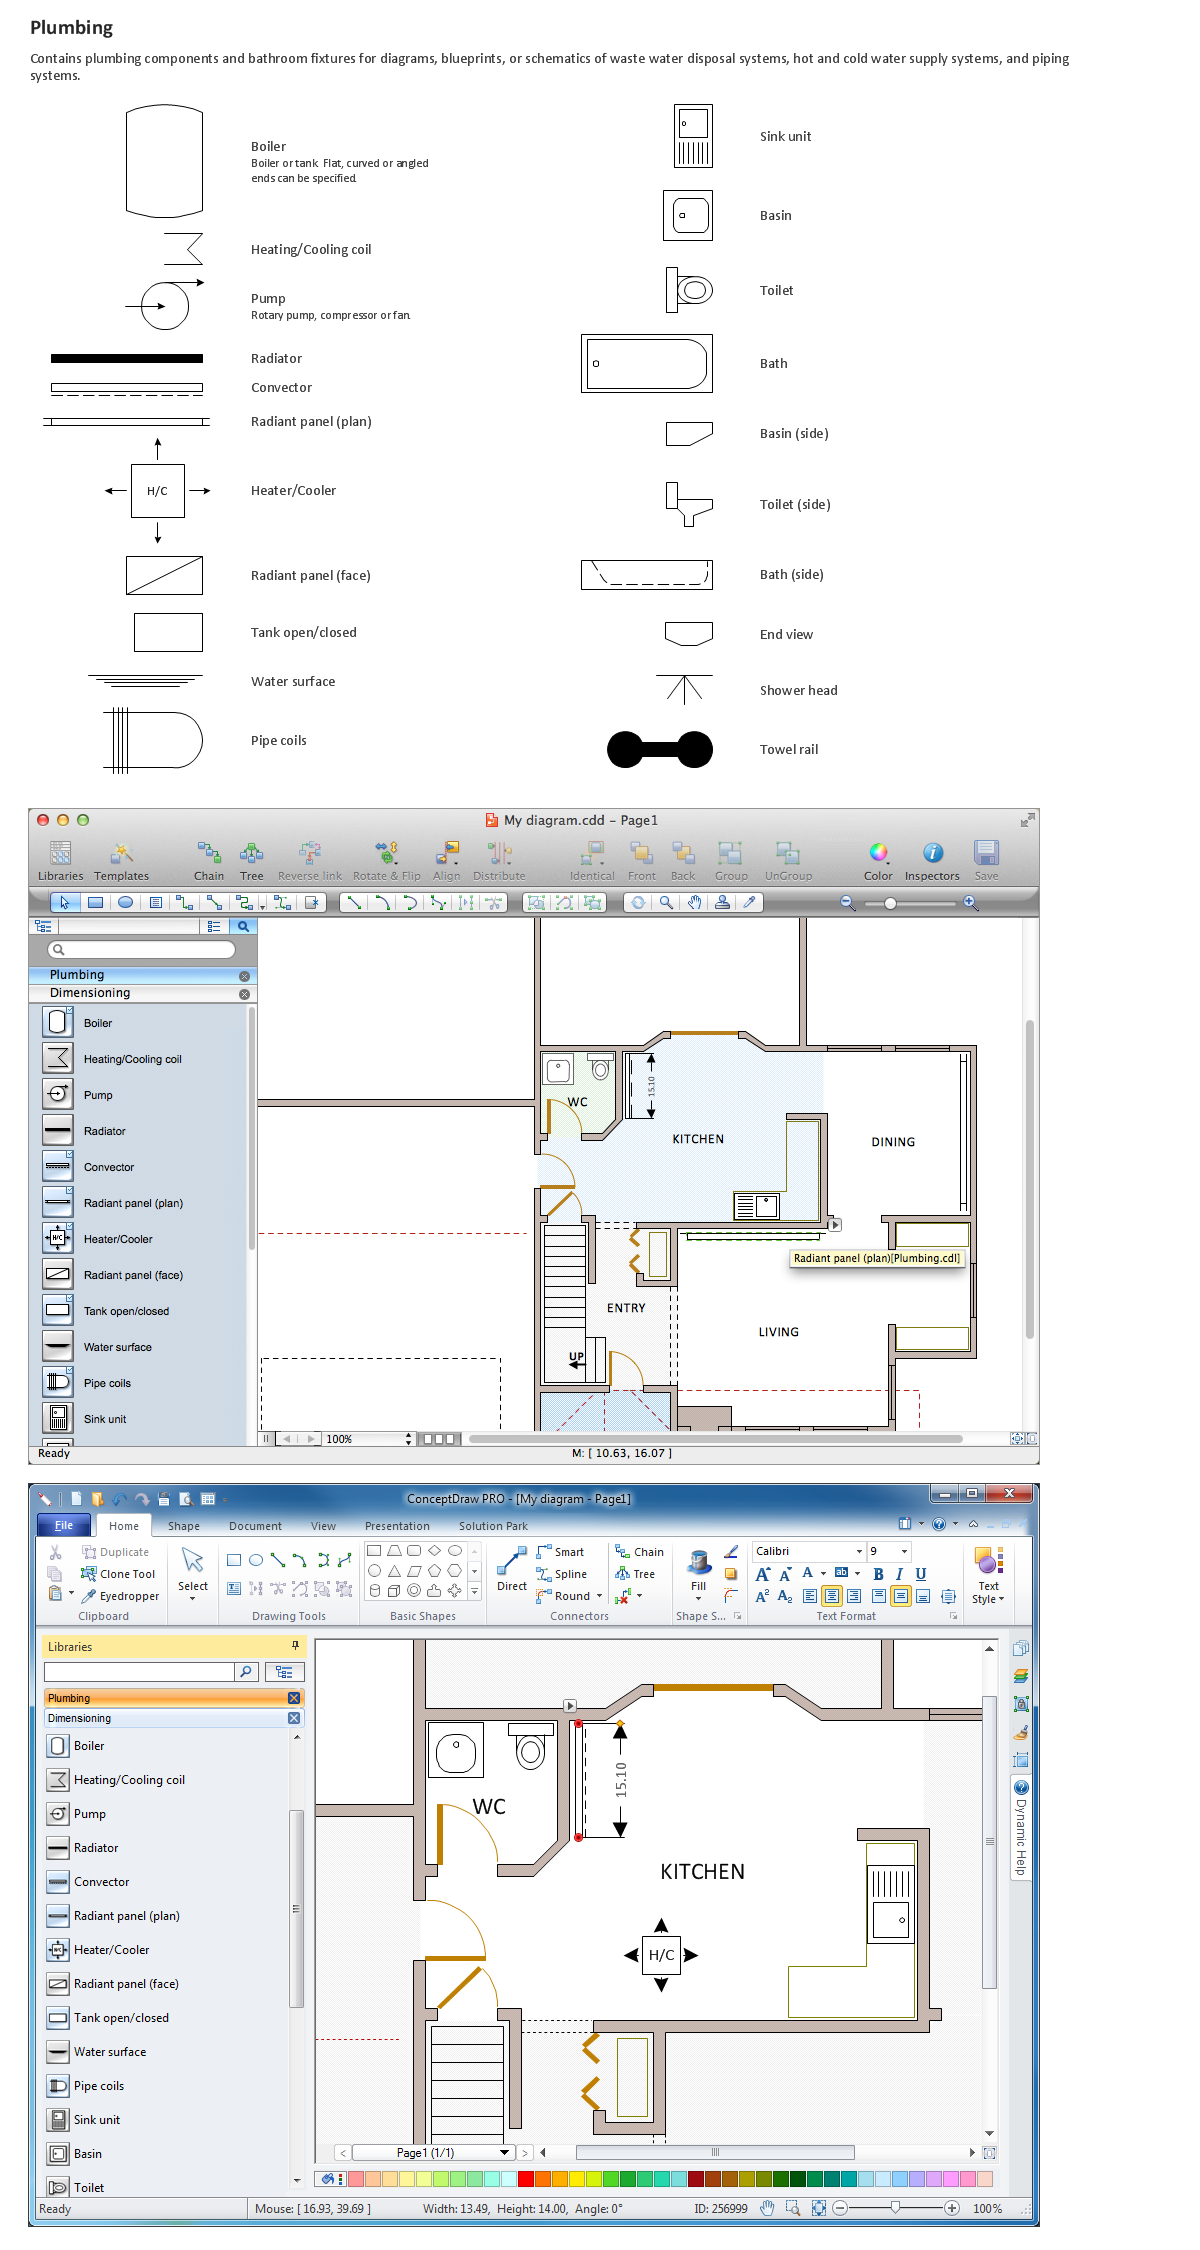 House electrical plan software electrical diagram software building drawing tools design elements plumbing malvernweather